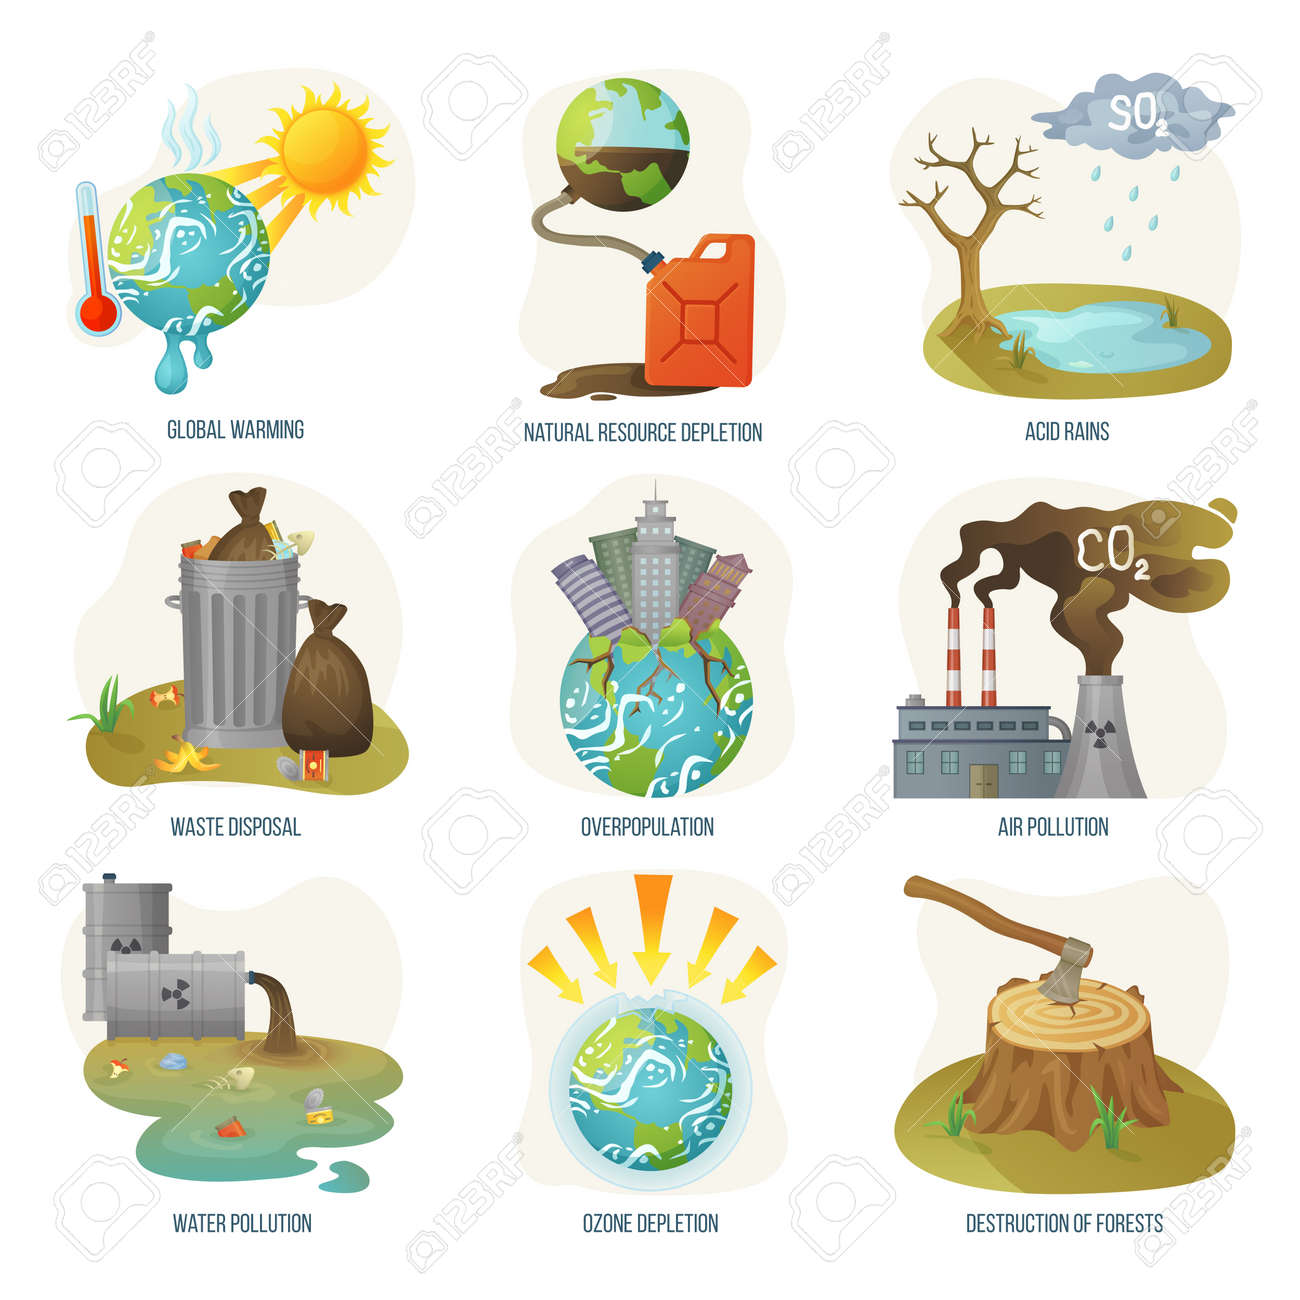 Global warming natural resource depletion problems vector. Waste disposal, air and water pollution, ozone layers and deforestation destruction forests. Environment problematic in flat style - 125493794